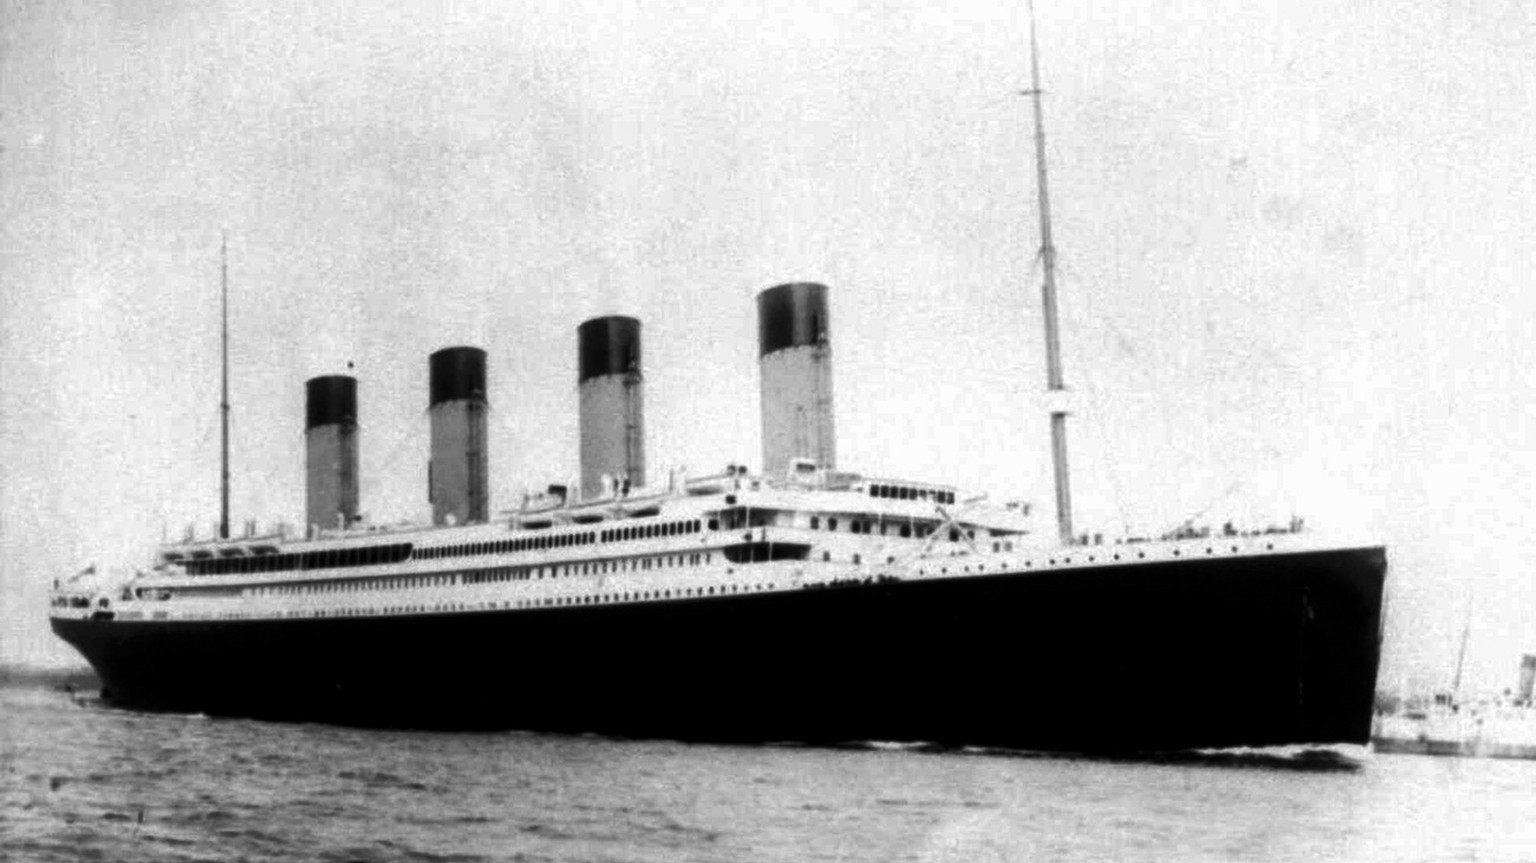 This undated photo shows the doomed liner the S.S. Titanic. April 15, 2012 is the 100th anniversary of the sinking of the Titanic, just five days after it left Southampton on its maiden voyage to New York.(AP Photo/PA,Files)